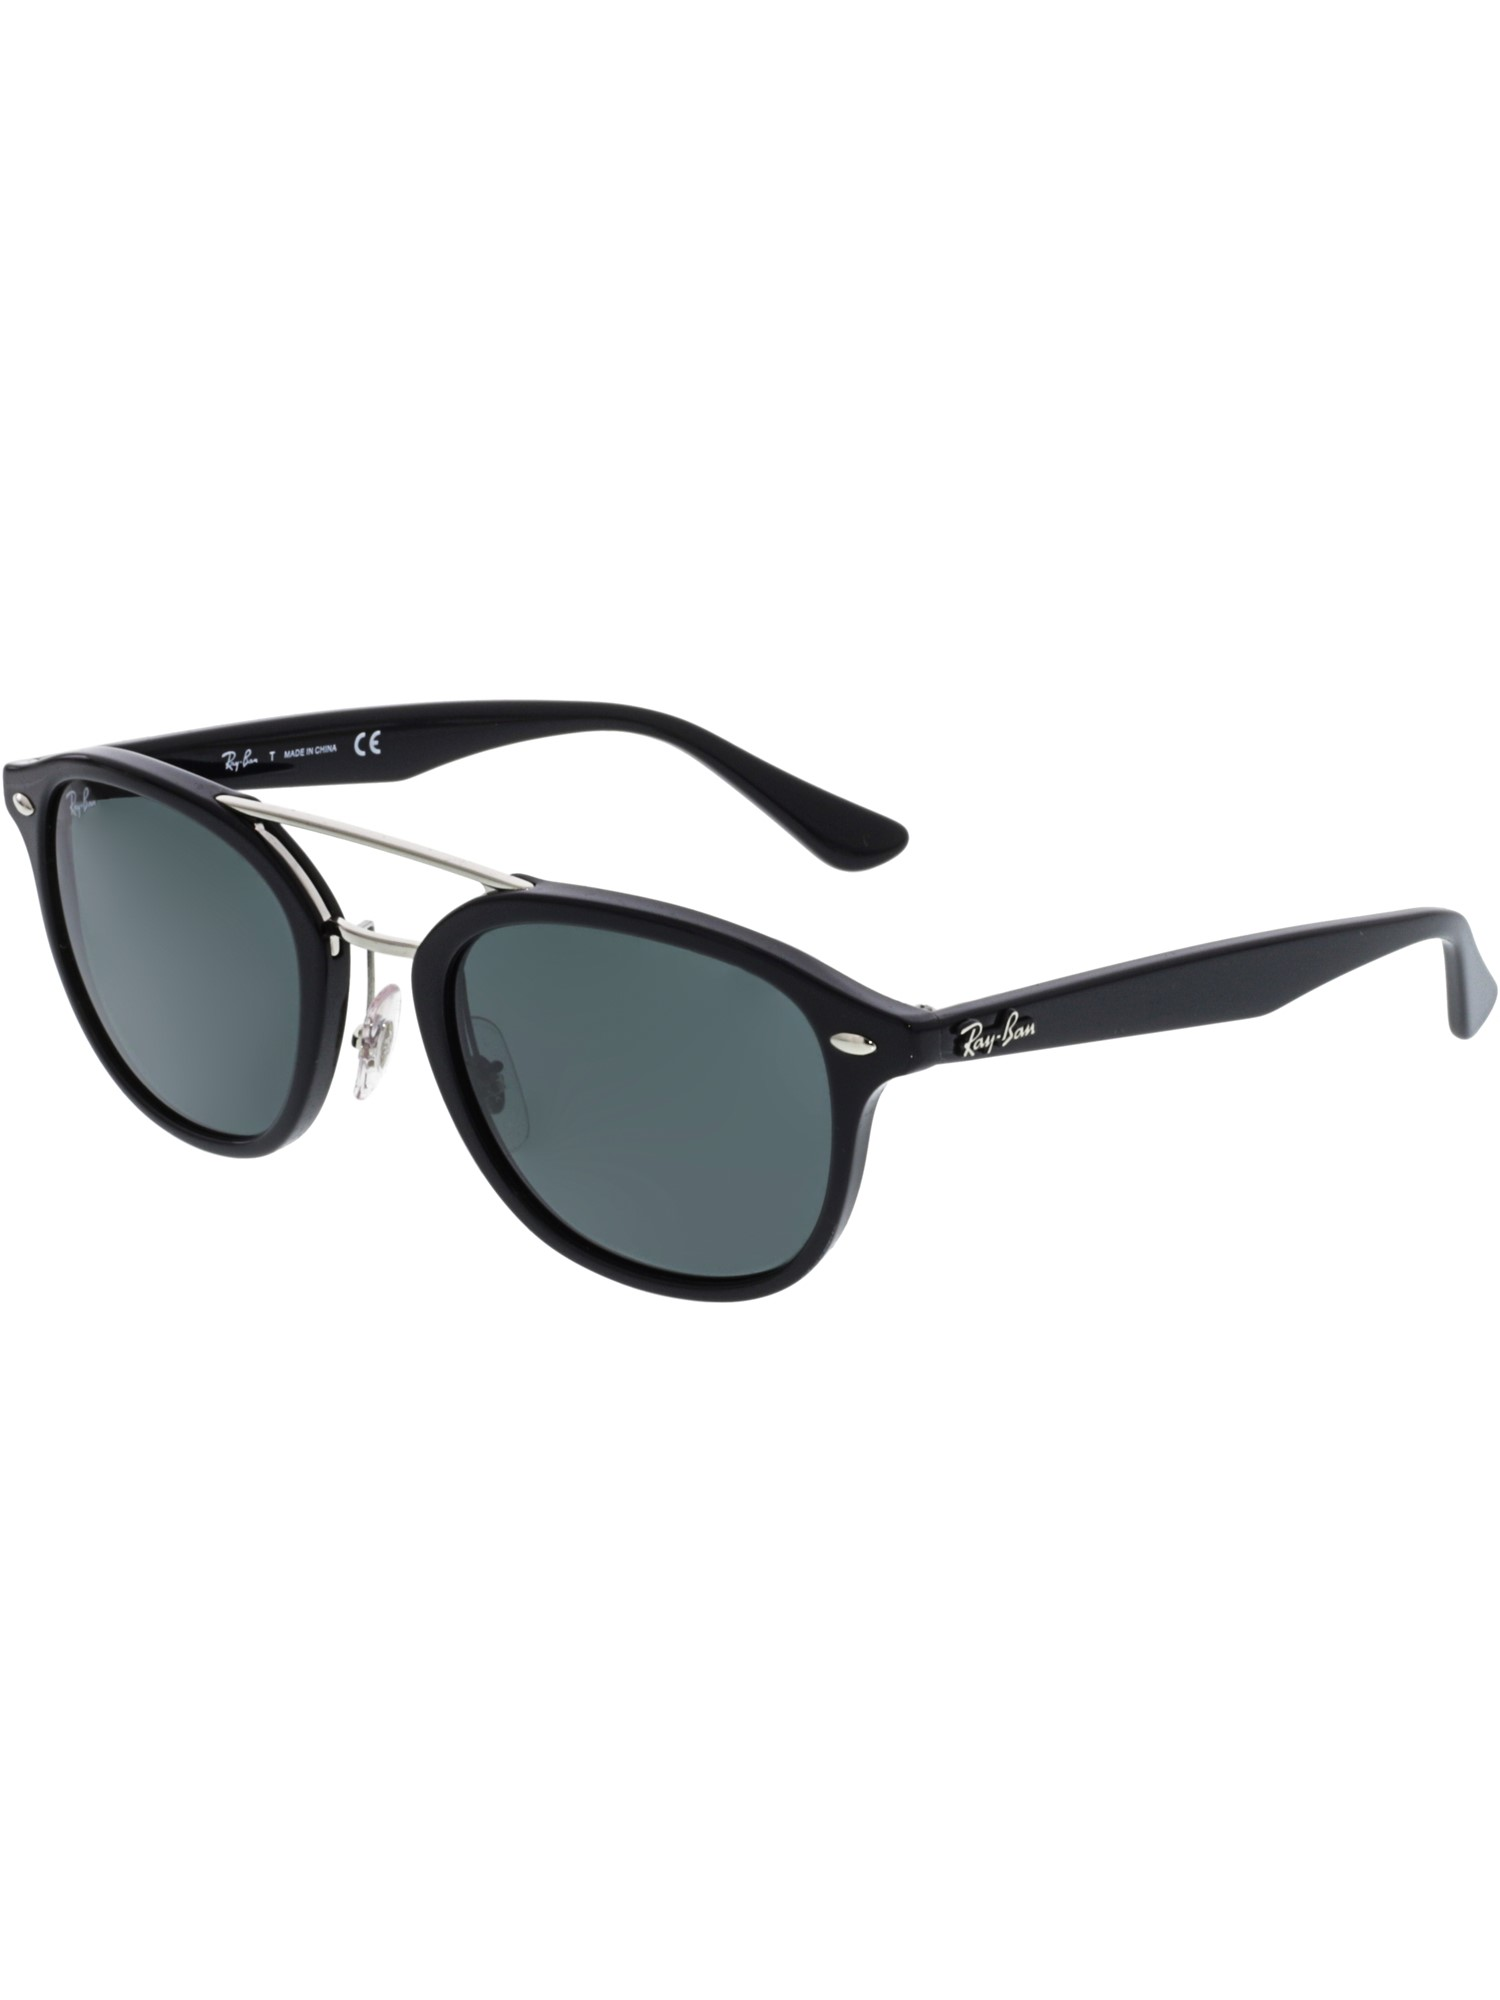 Ray-Ban Unisex RB2183 Square Sunglasses, 53mm